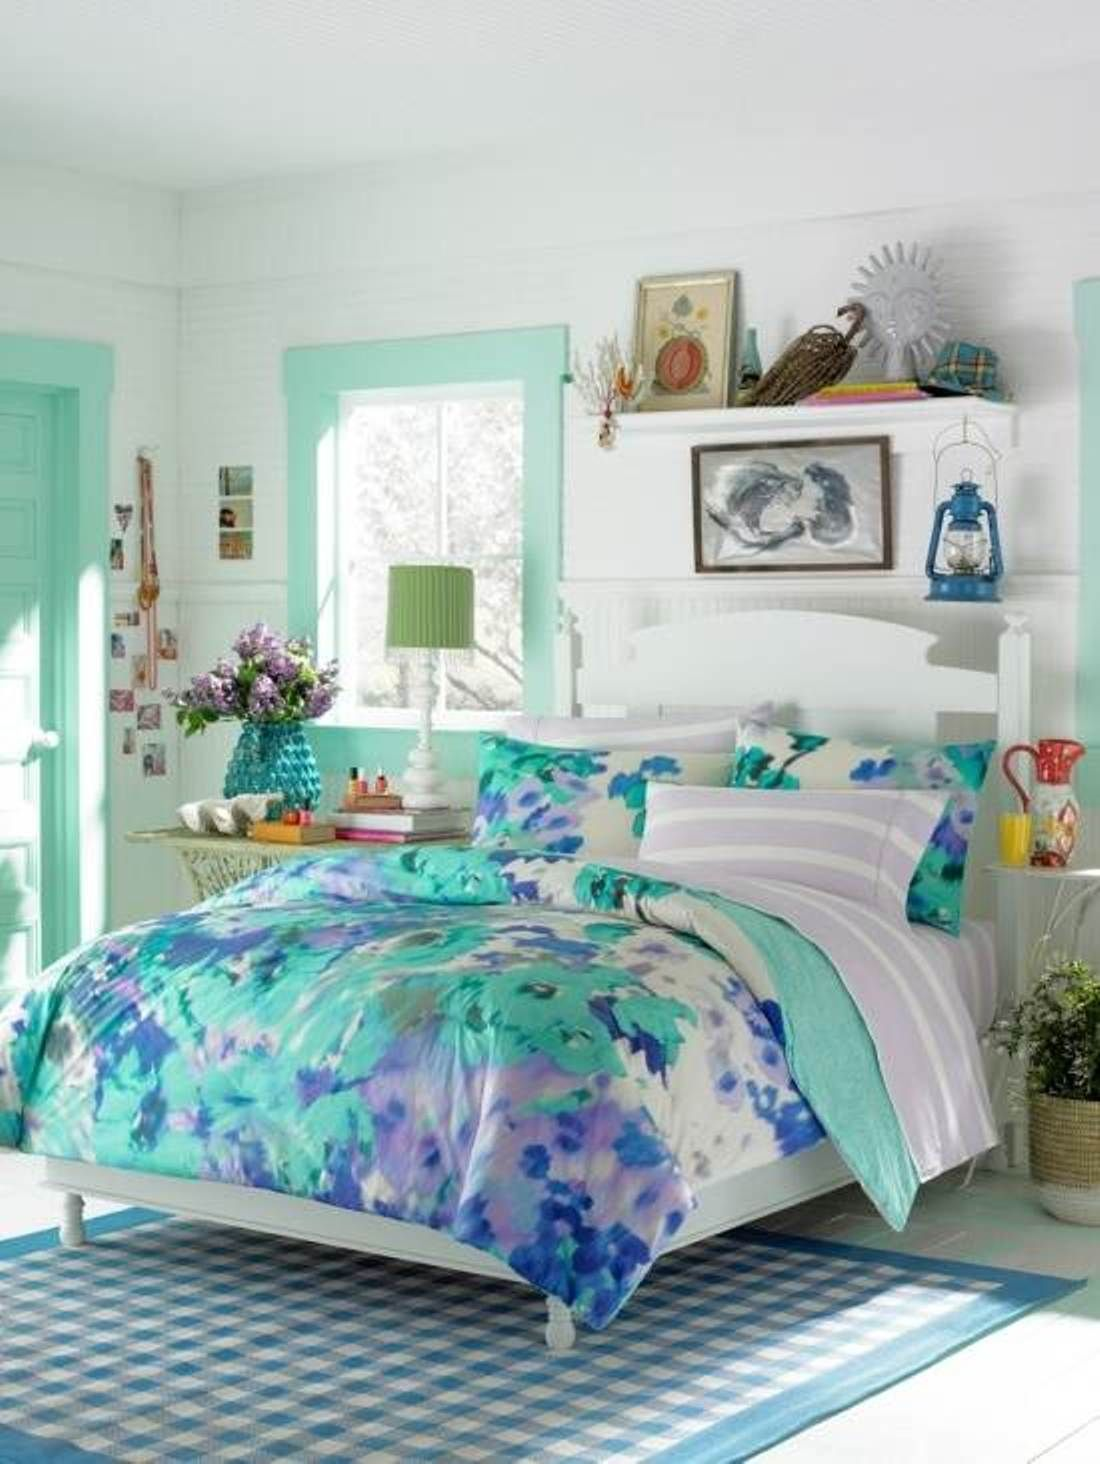 Bedroom design for girls blue - Top Girls Bedroom Ideas Blue With Teenage Girl Bedroom Blue Flower Themes